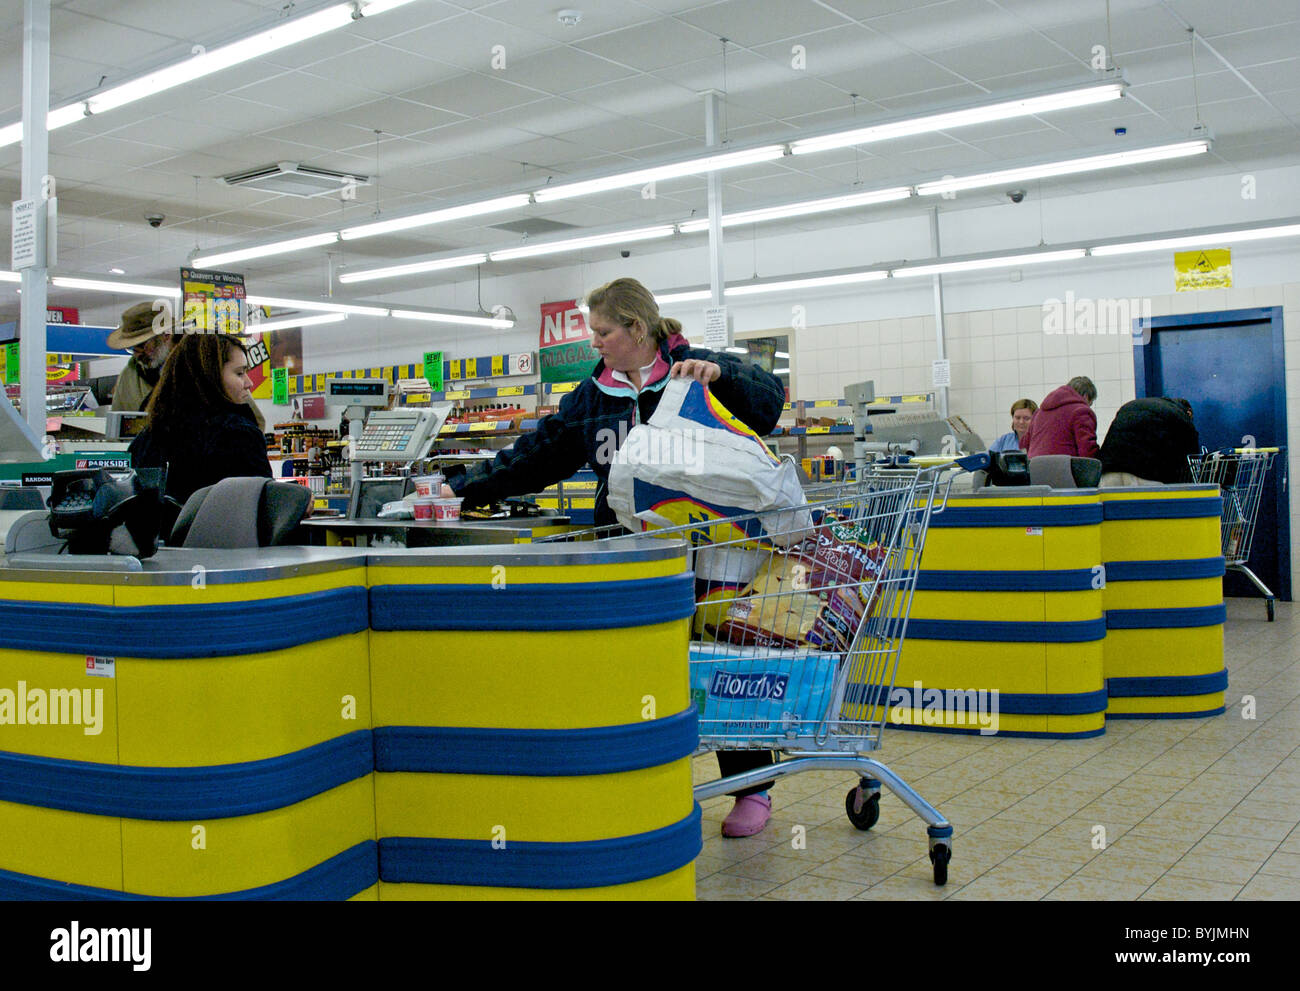 Interior Of Large Store Showing The Wide Range Of Merchandise Available.  This Is The Checkout Or Tills Area In A Lidls Store